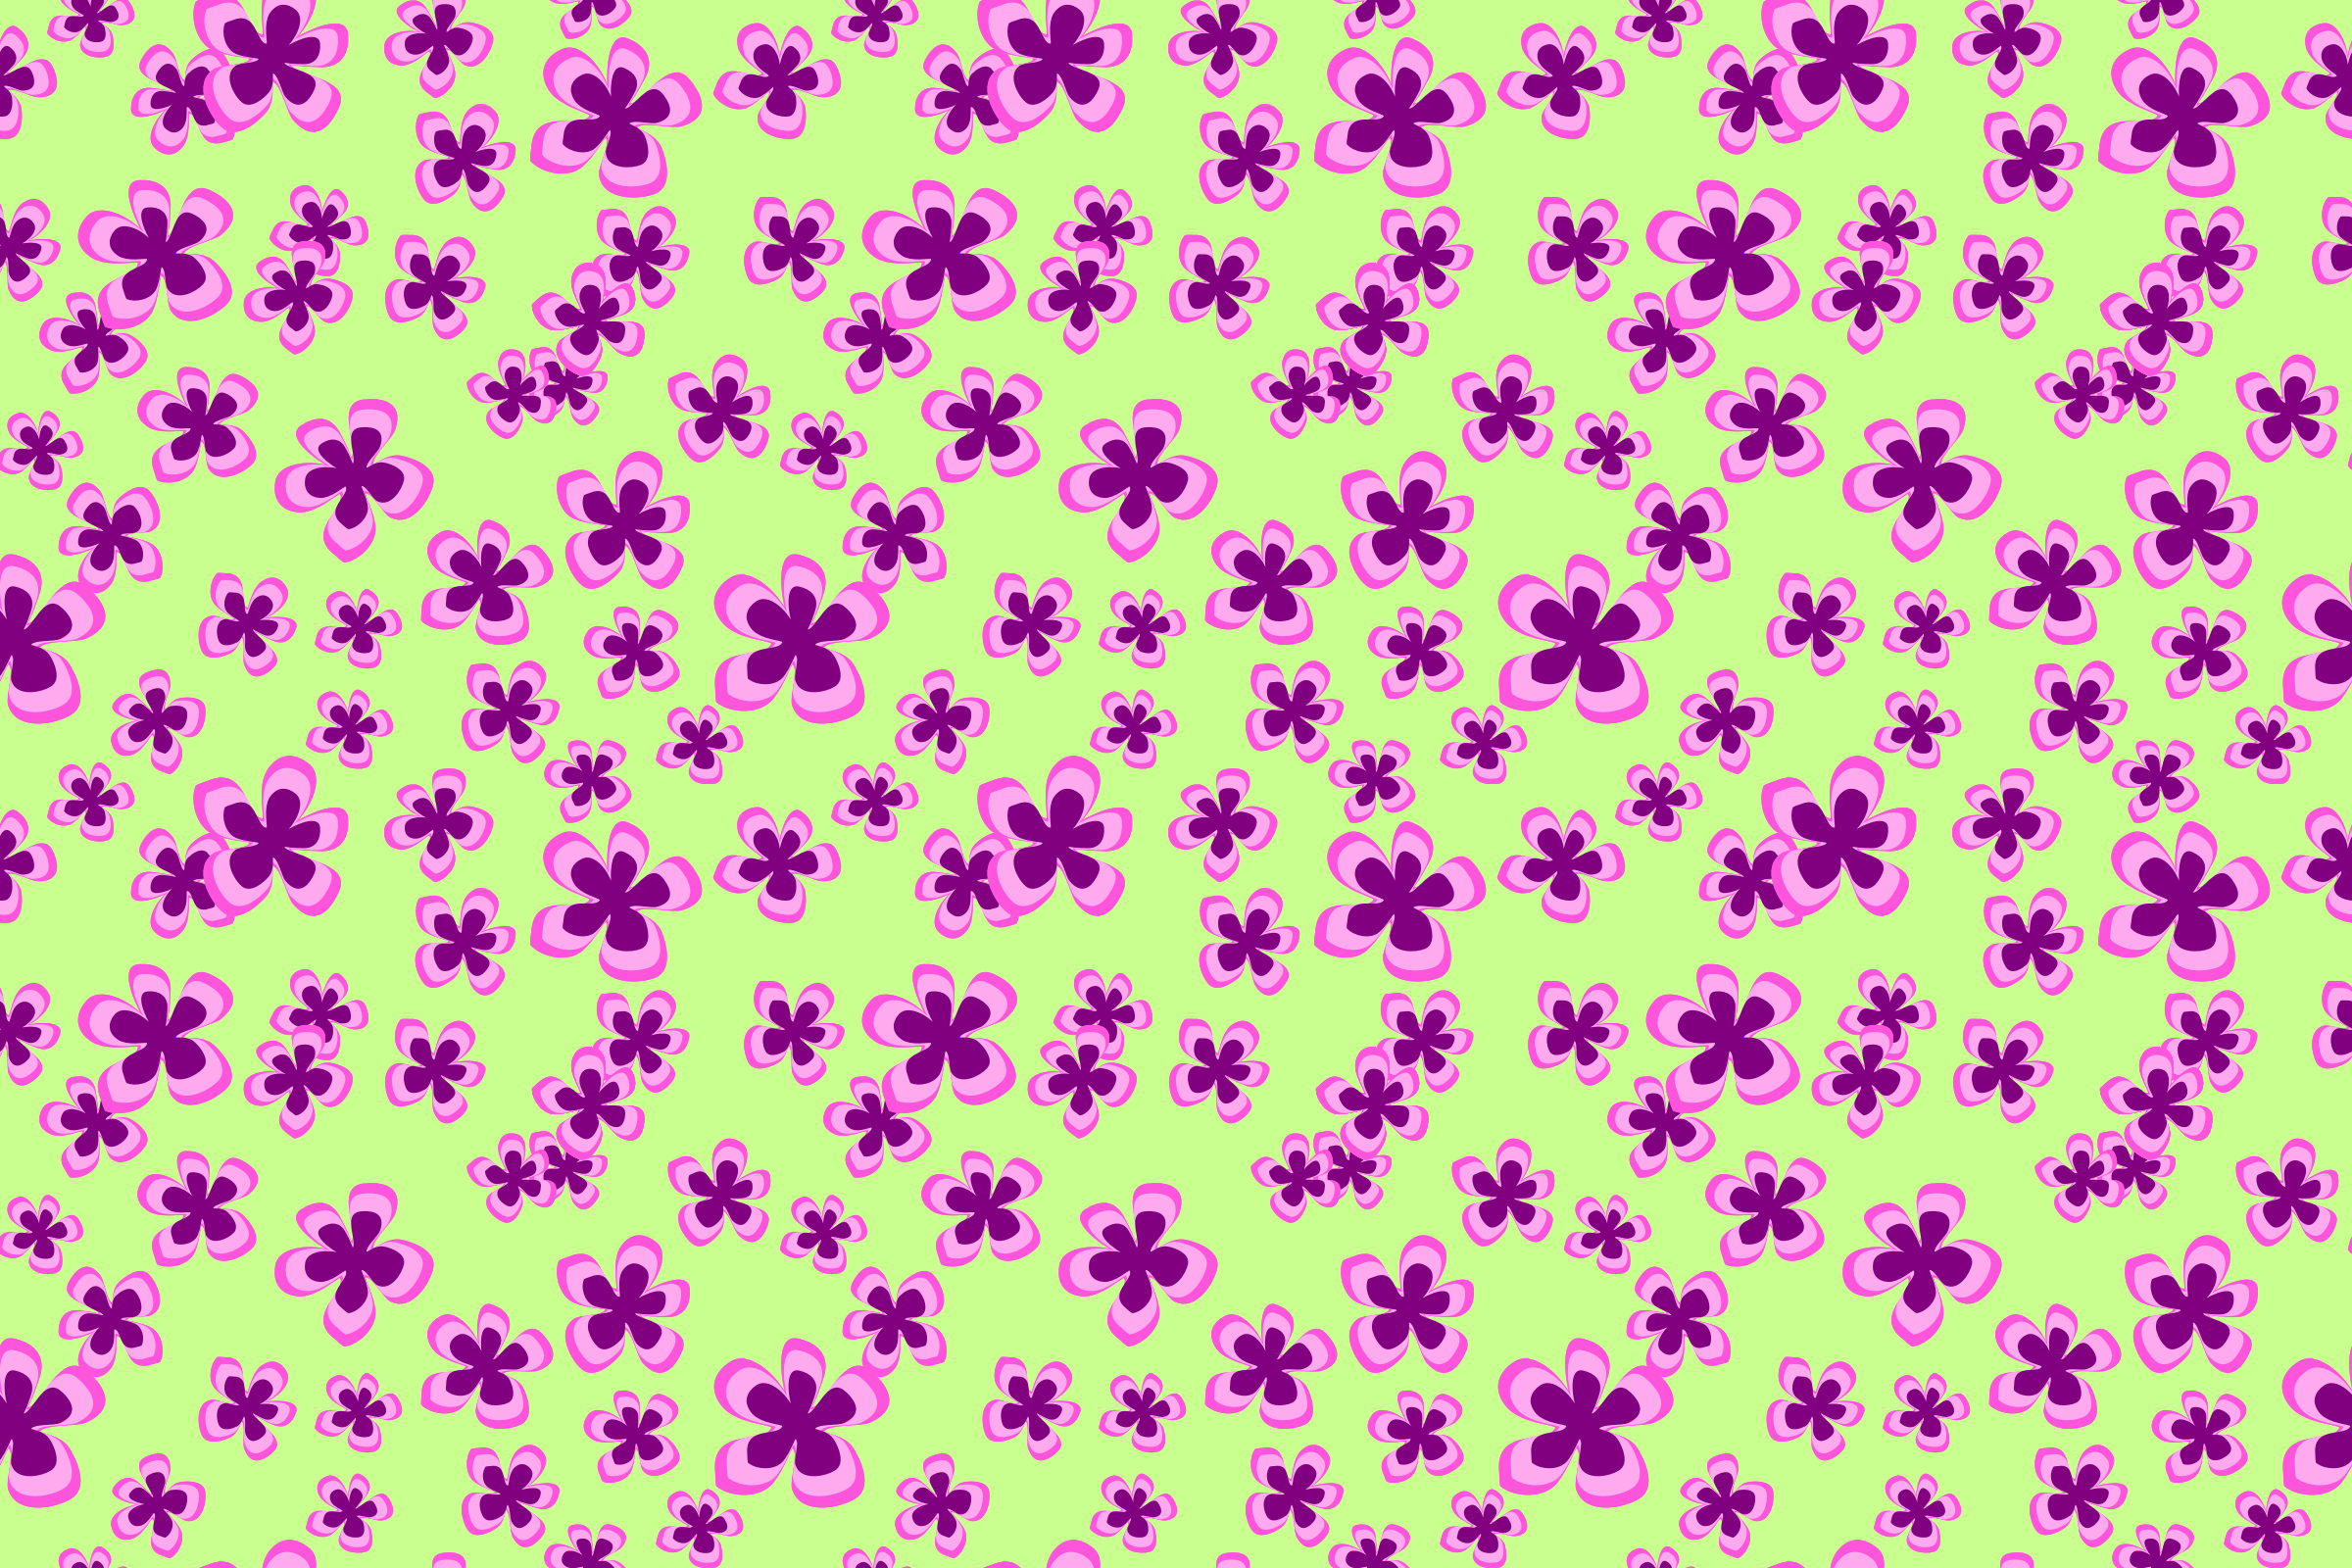 Floral pattern 7 by Firkin